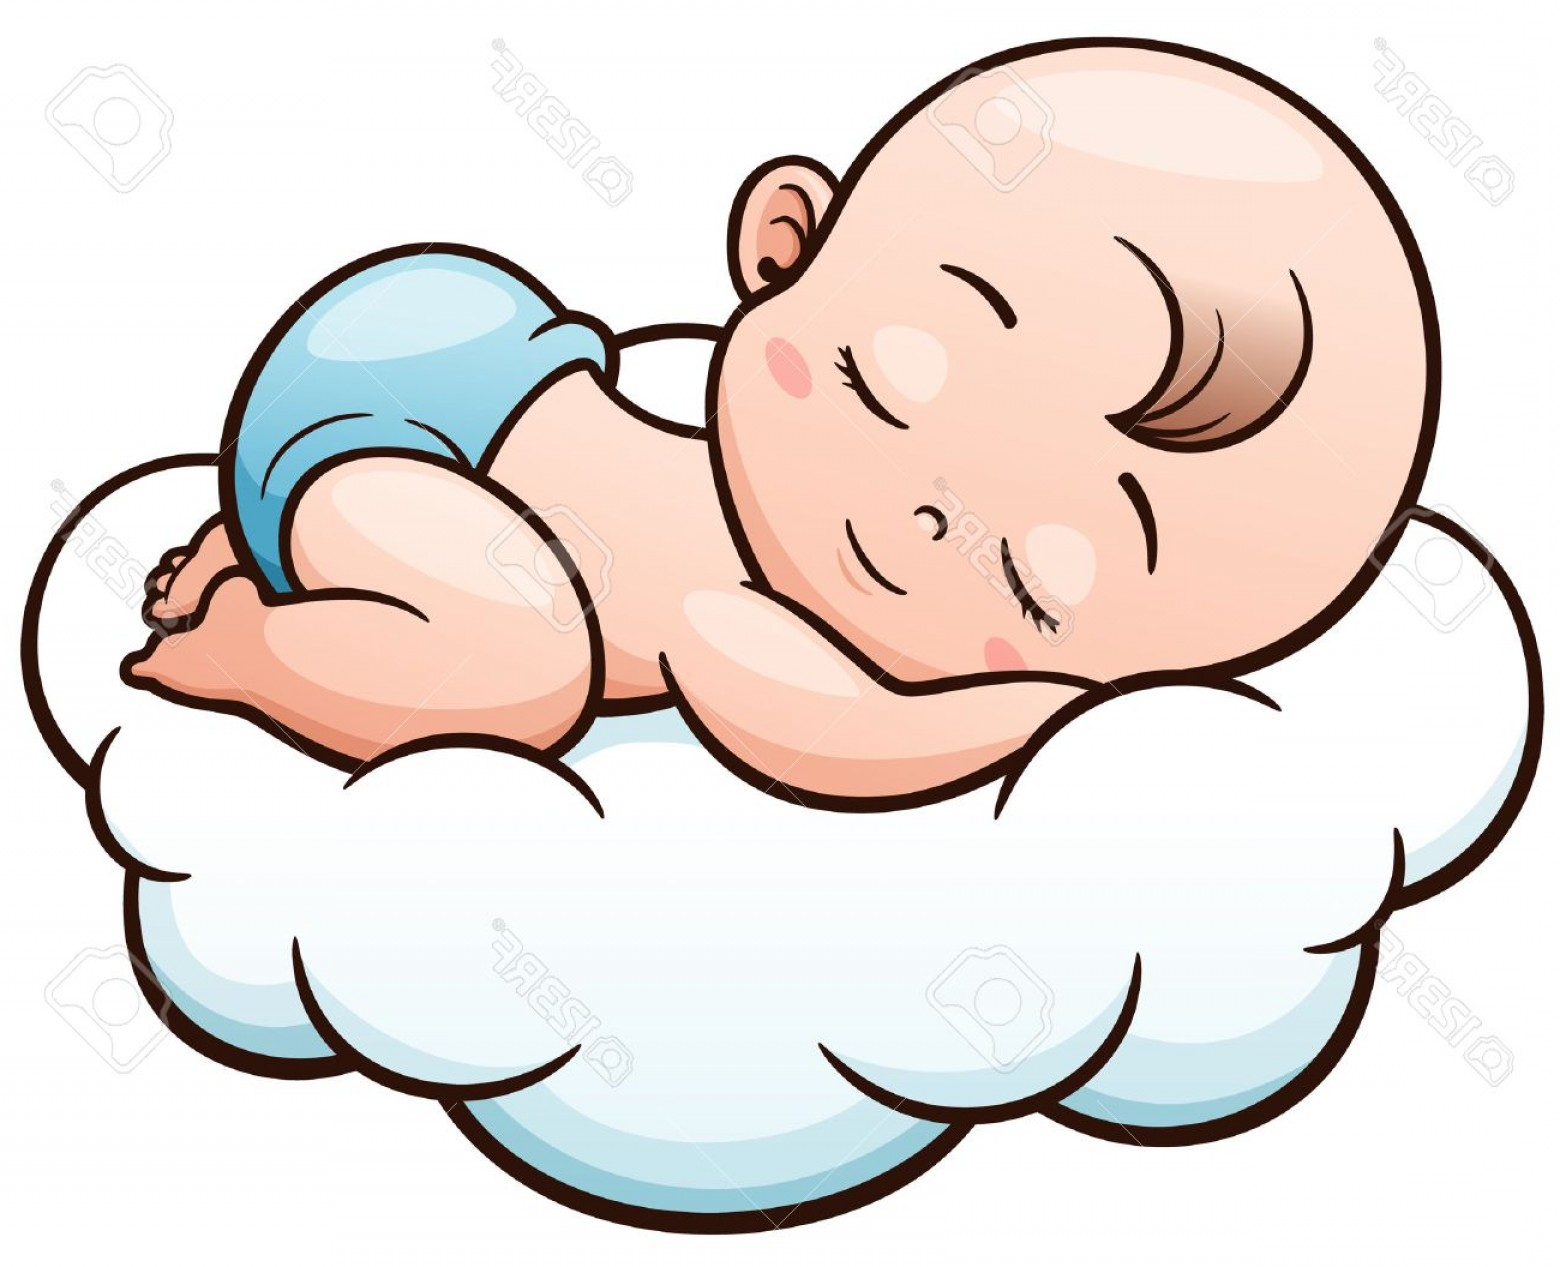 Sleeping Baby Vector: Photostock Vector Vector Illustration Of Cartoon Baby Sleeping On A Cloud